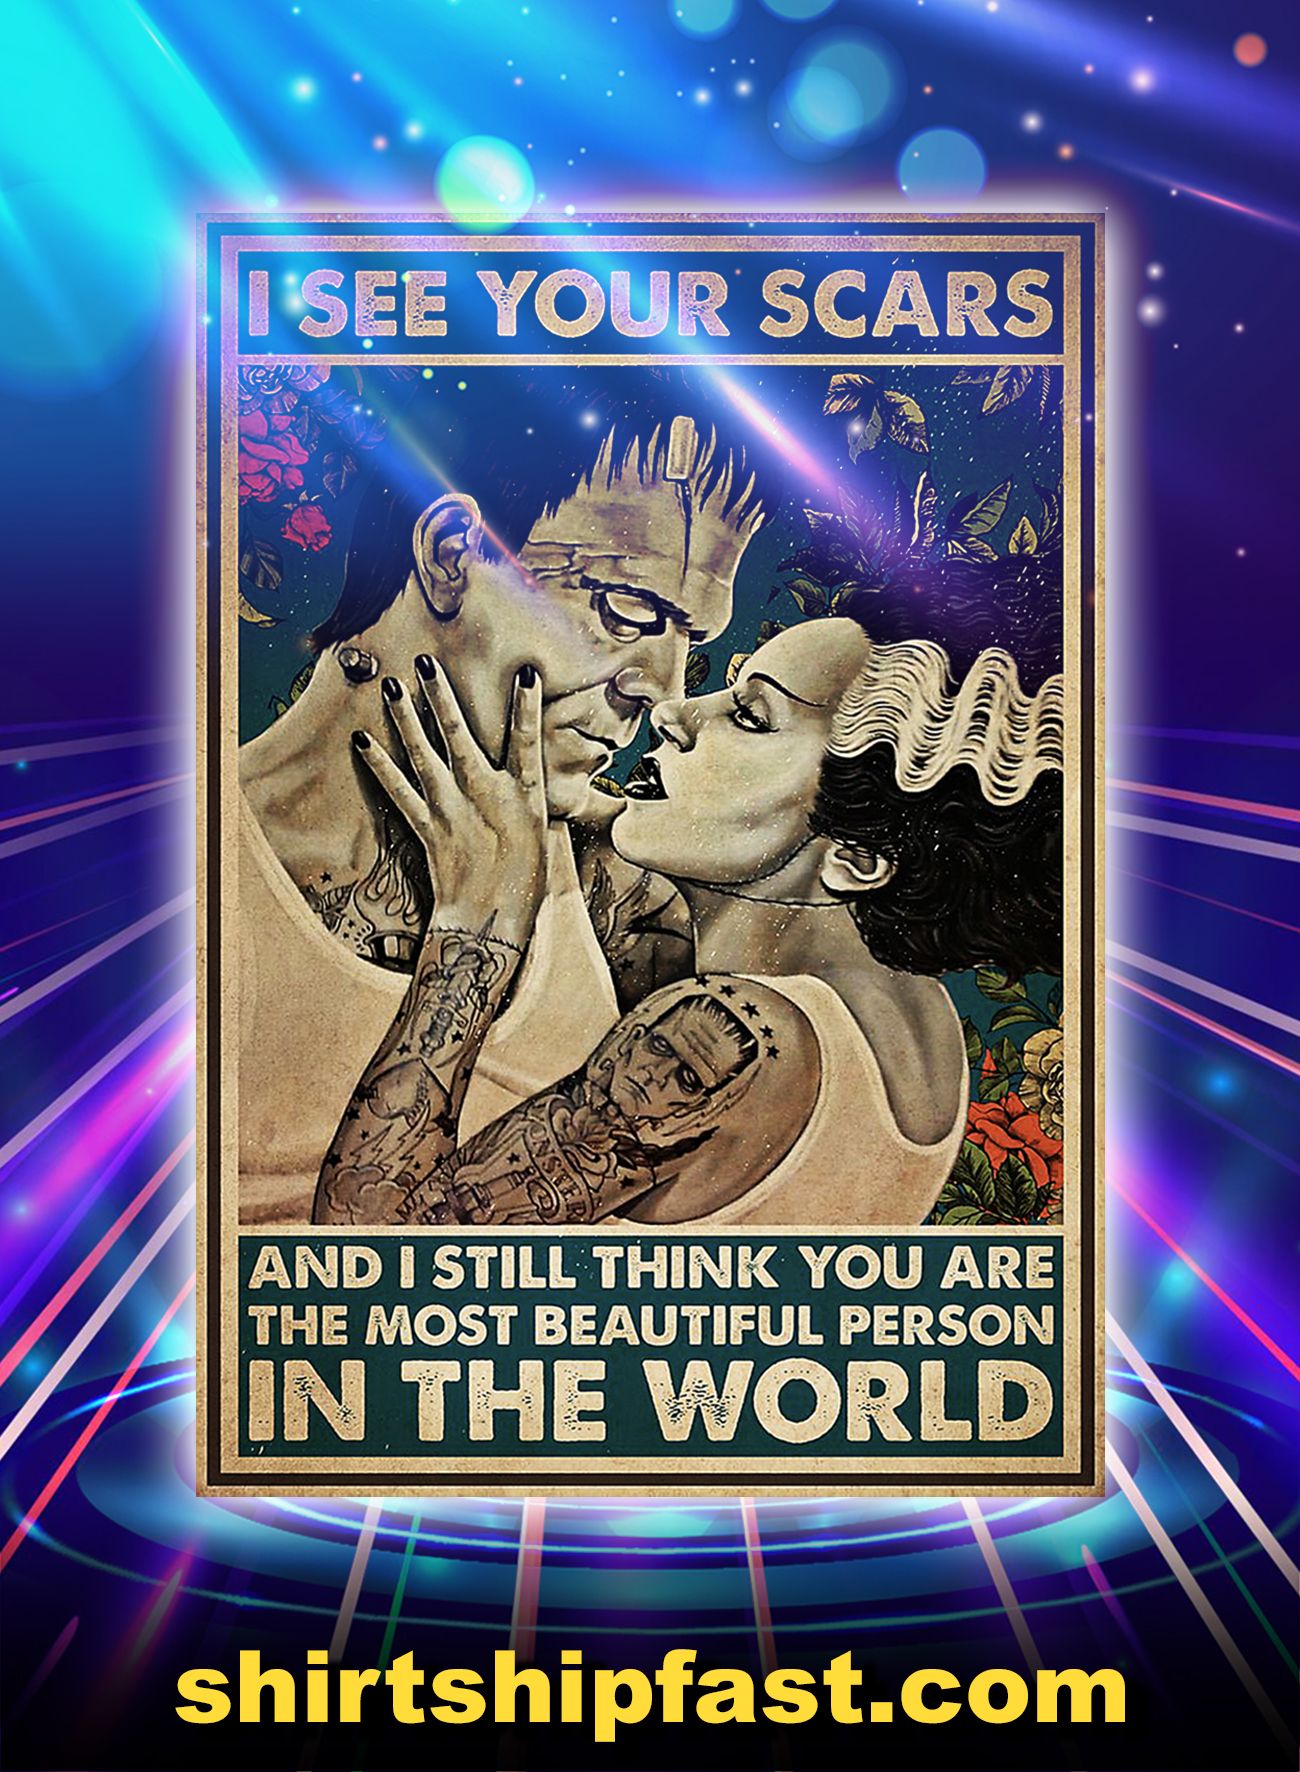 Frankenstein and bride I see your scars poster - A1